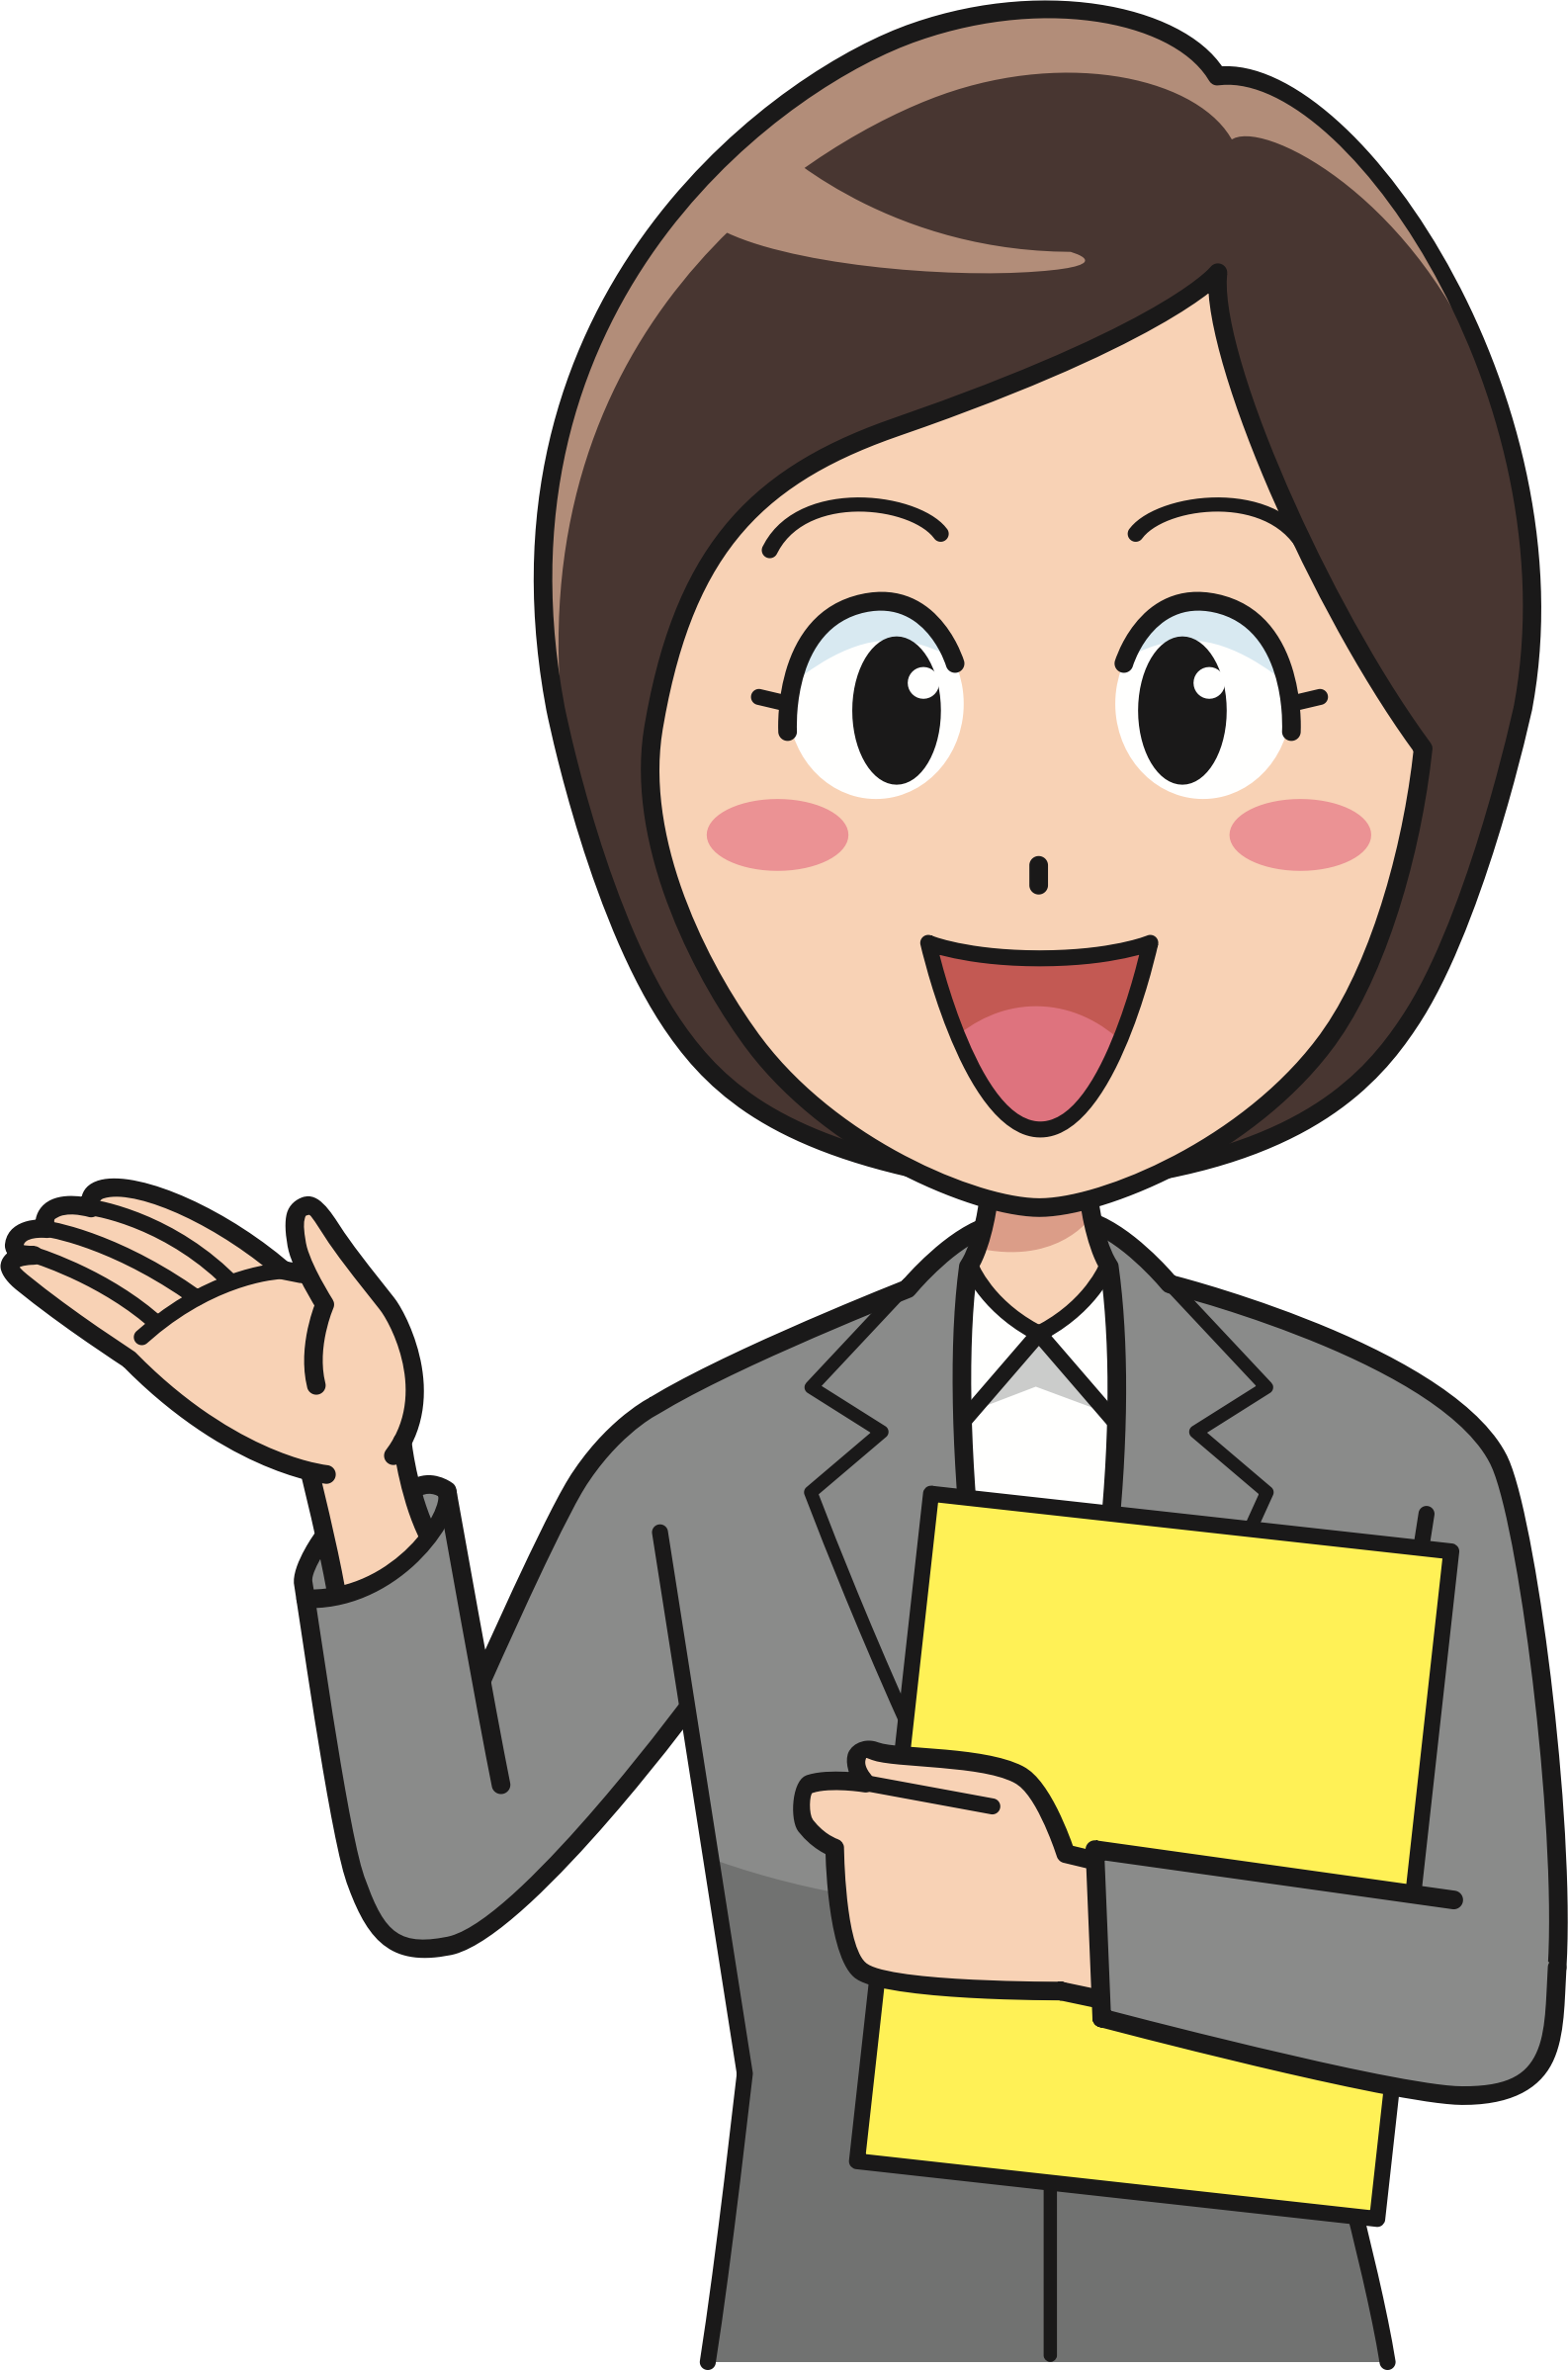 Teamwork clipart office. Female worker big image